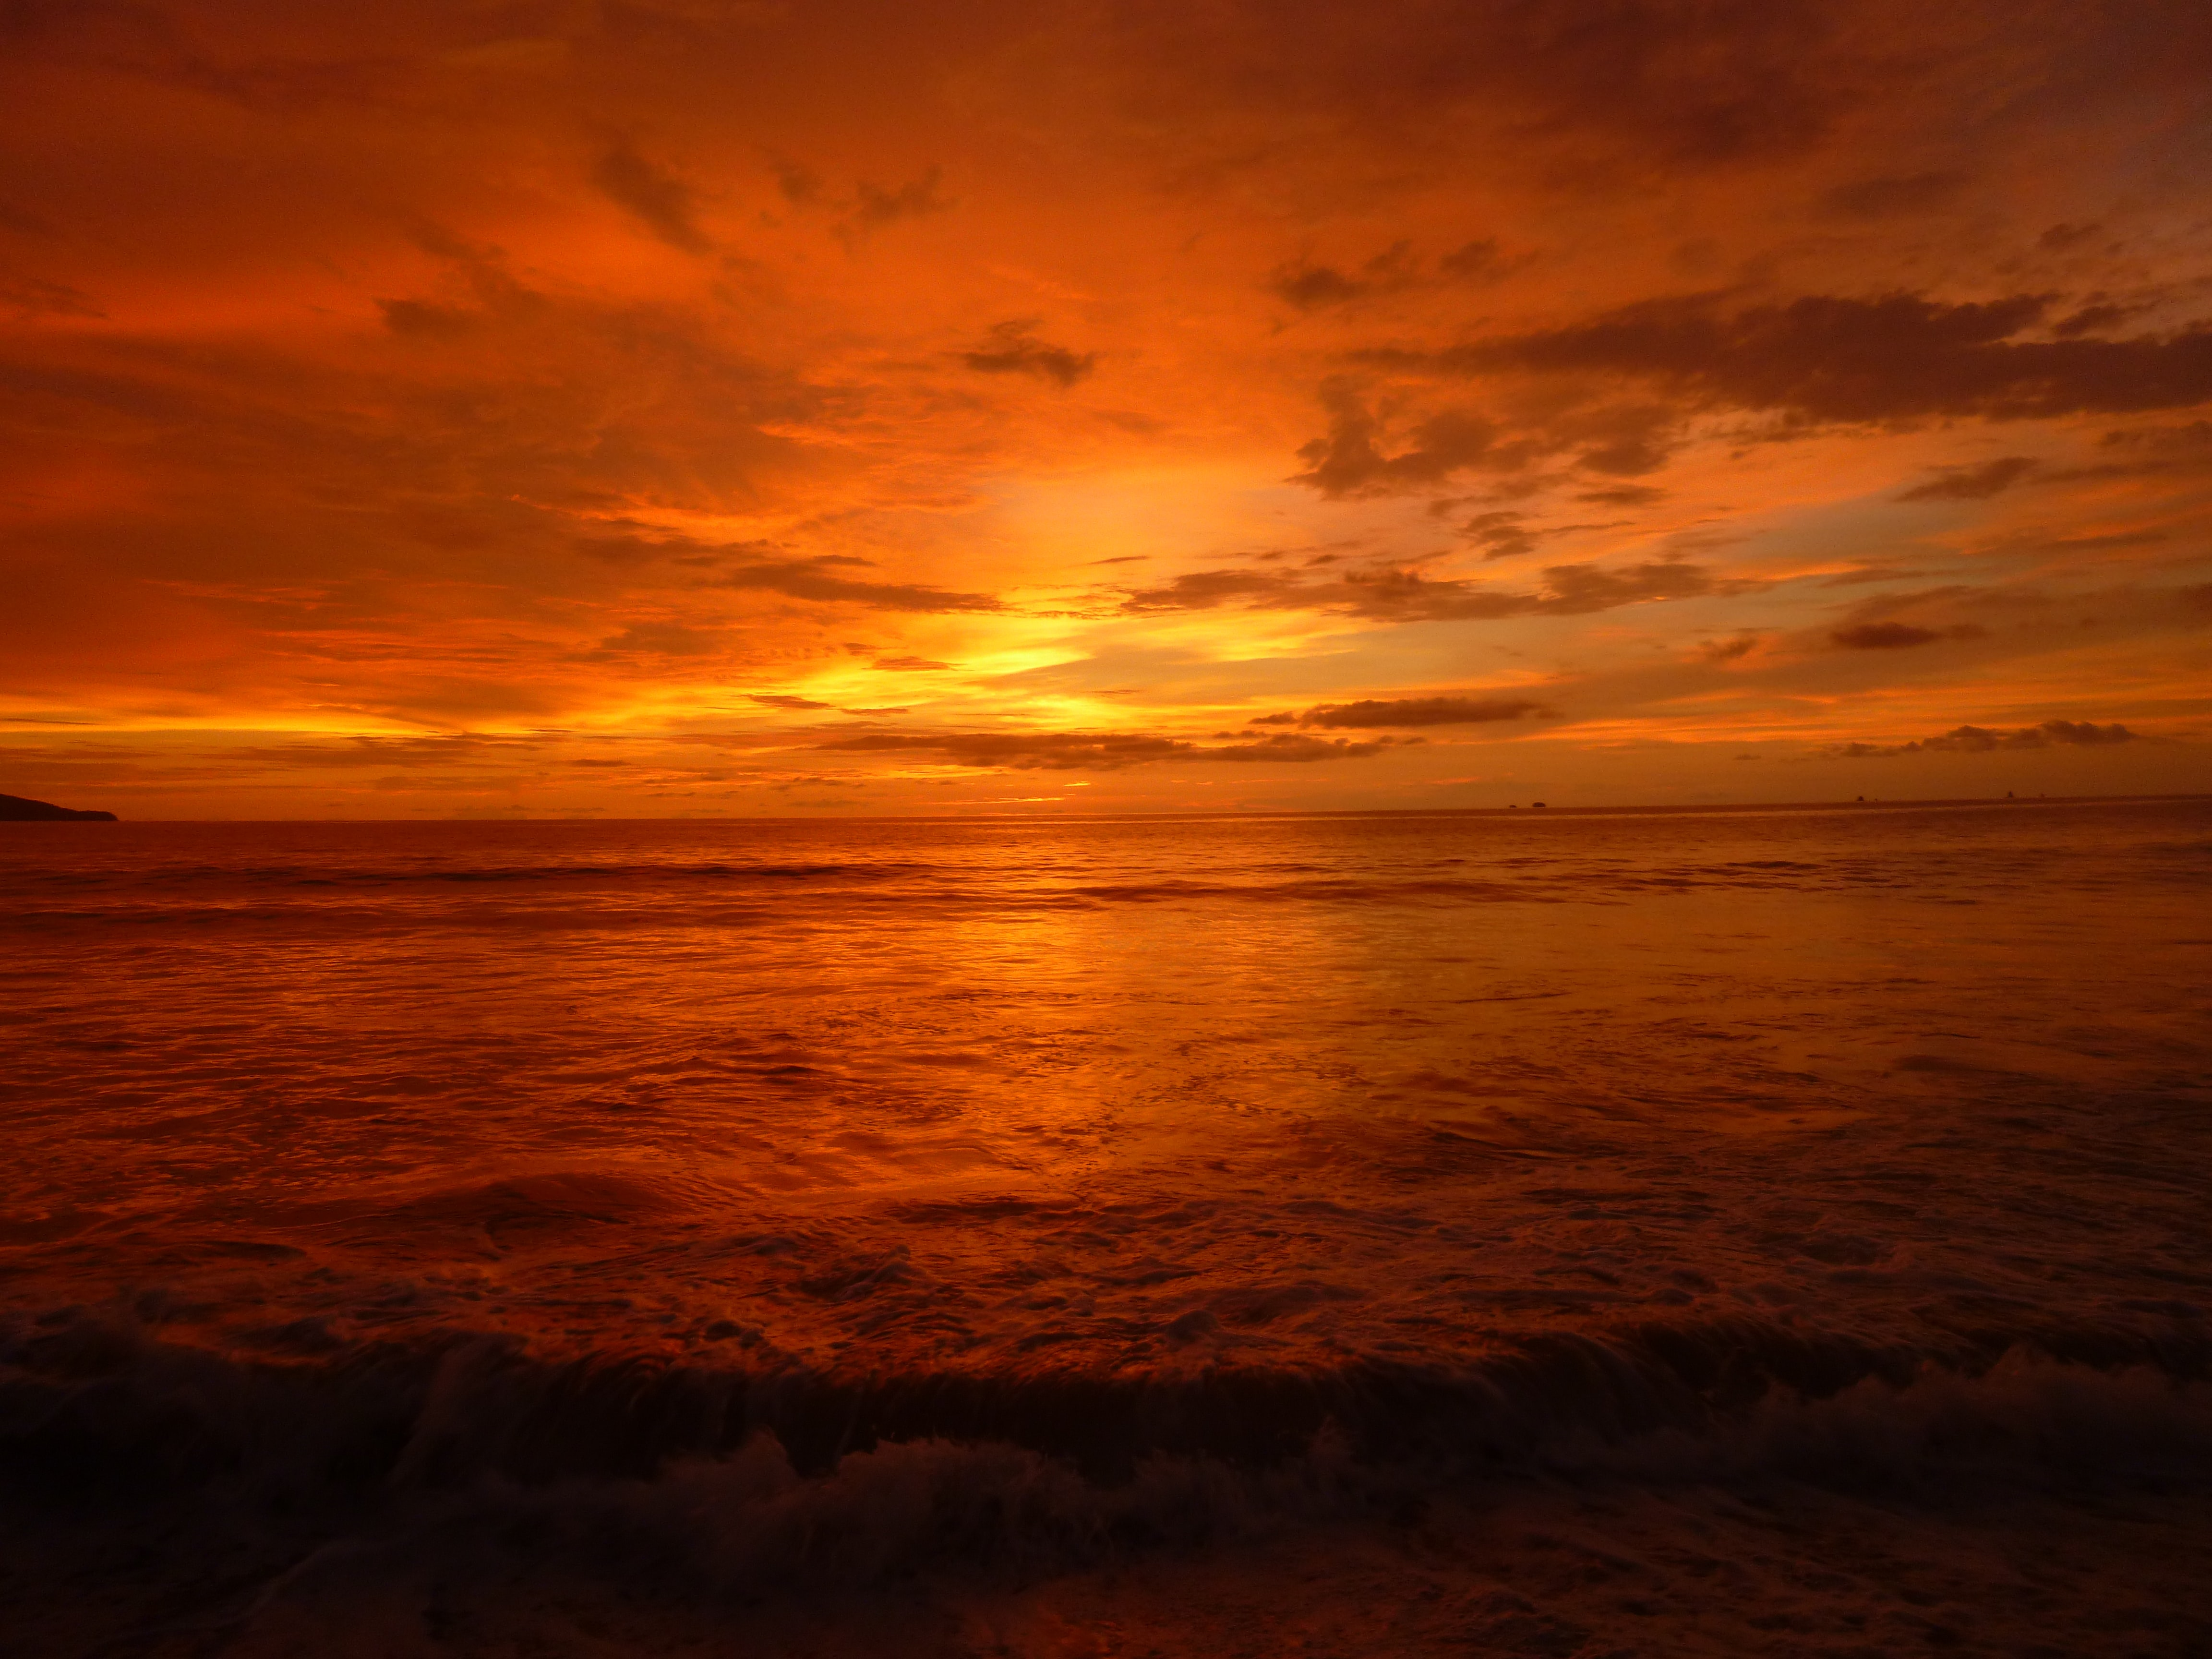 Dramatic golden sunset. photo by cindy del valle (@cindydvr) on Unsplash